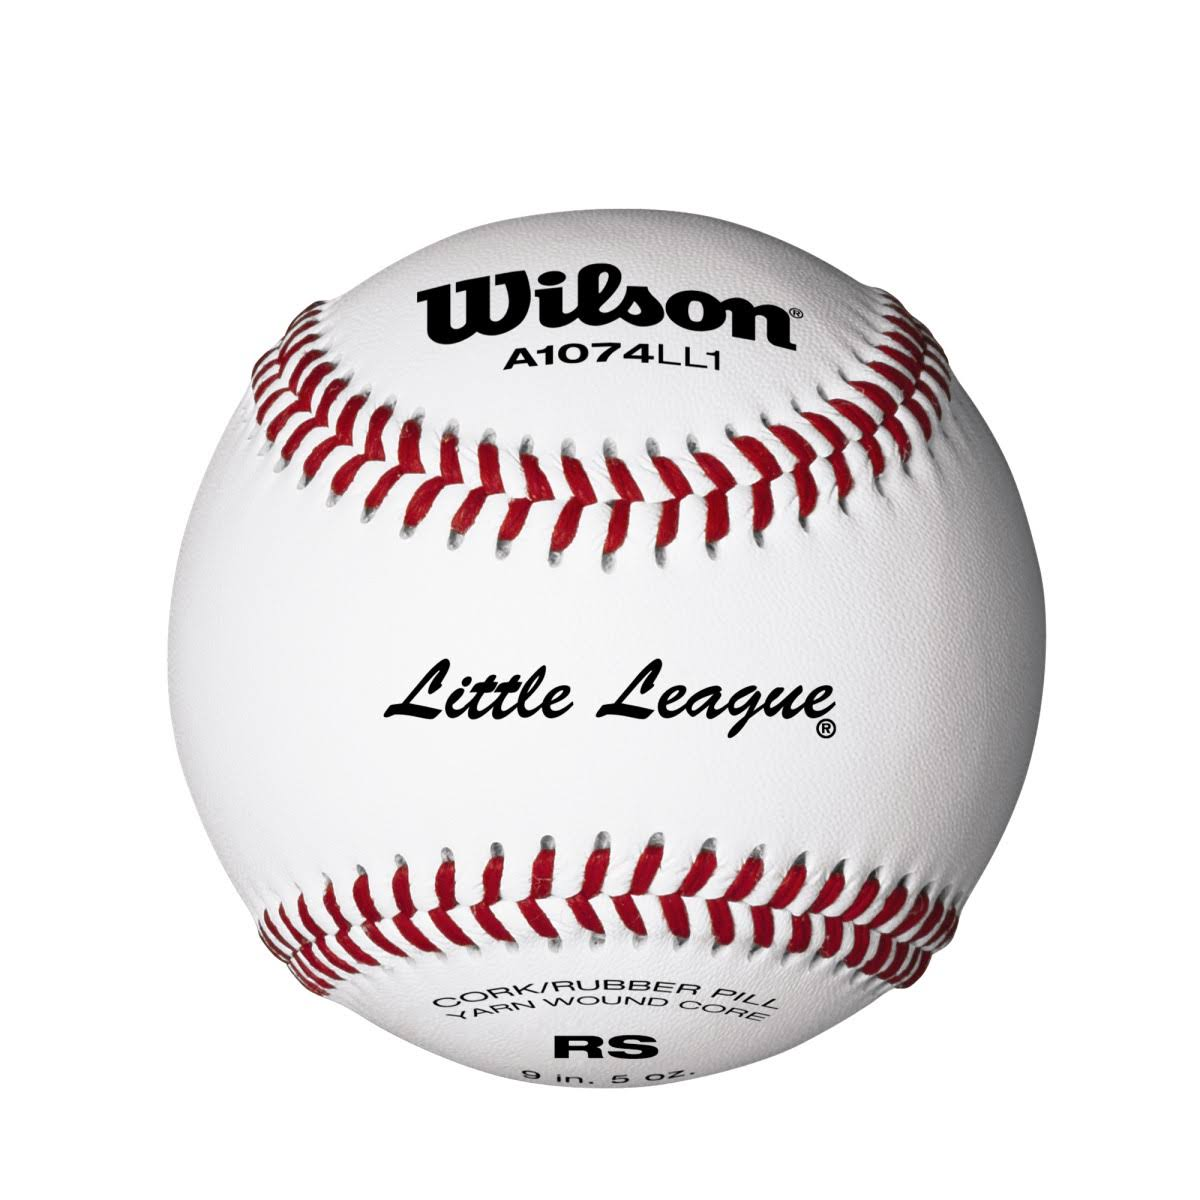 "Wilson Little League Baseball - 9"", 12pk"